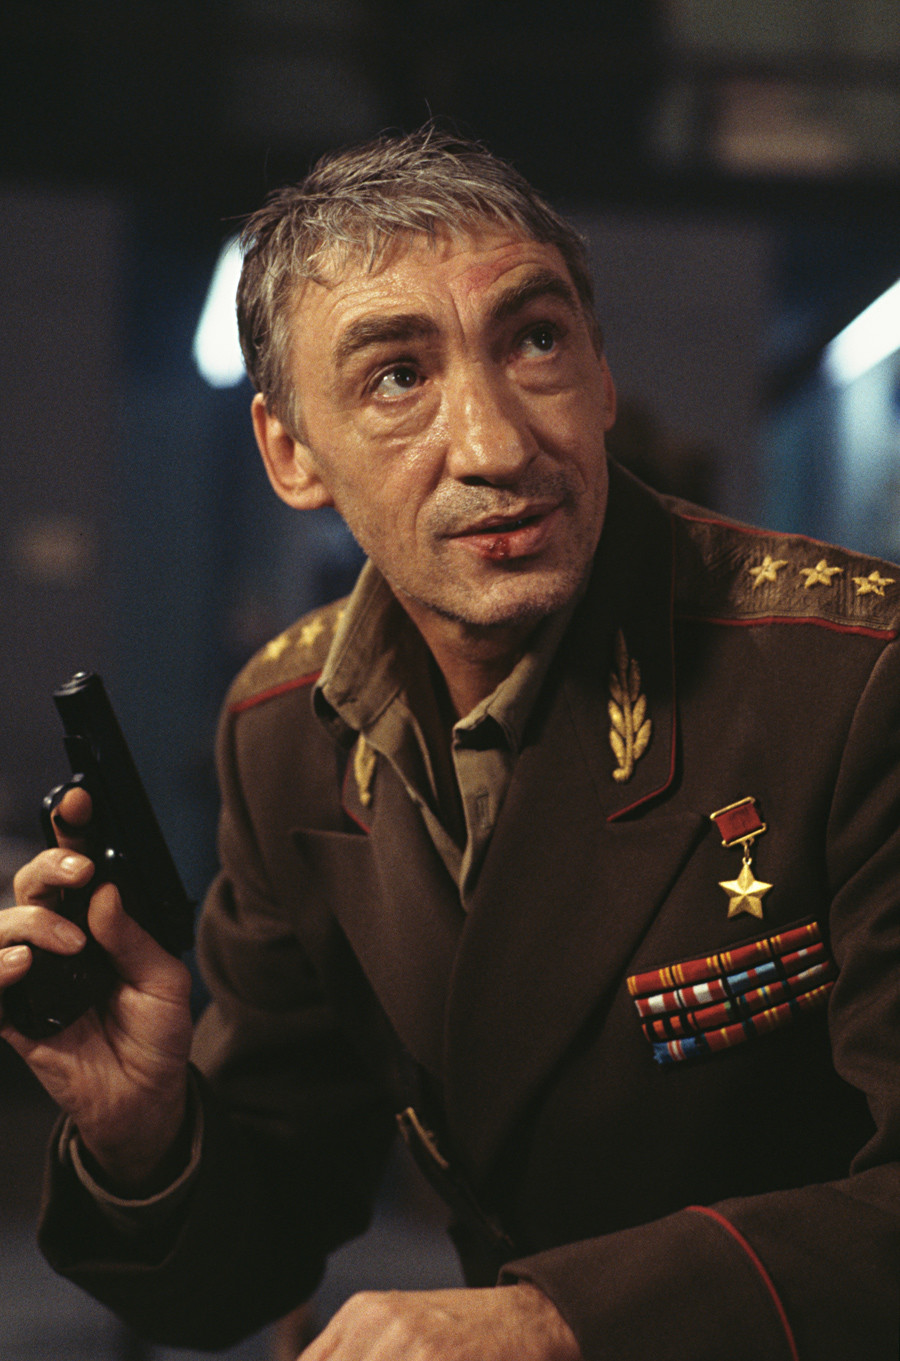 German actor Gottfried John stars as General Arkady Grigorovich Ourumov in the James Bond film 'GoldenEye', 1995.